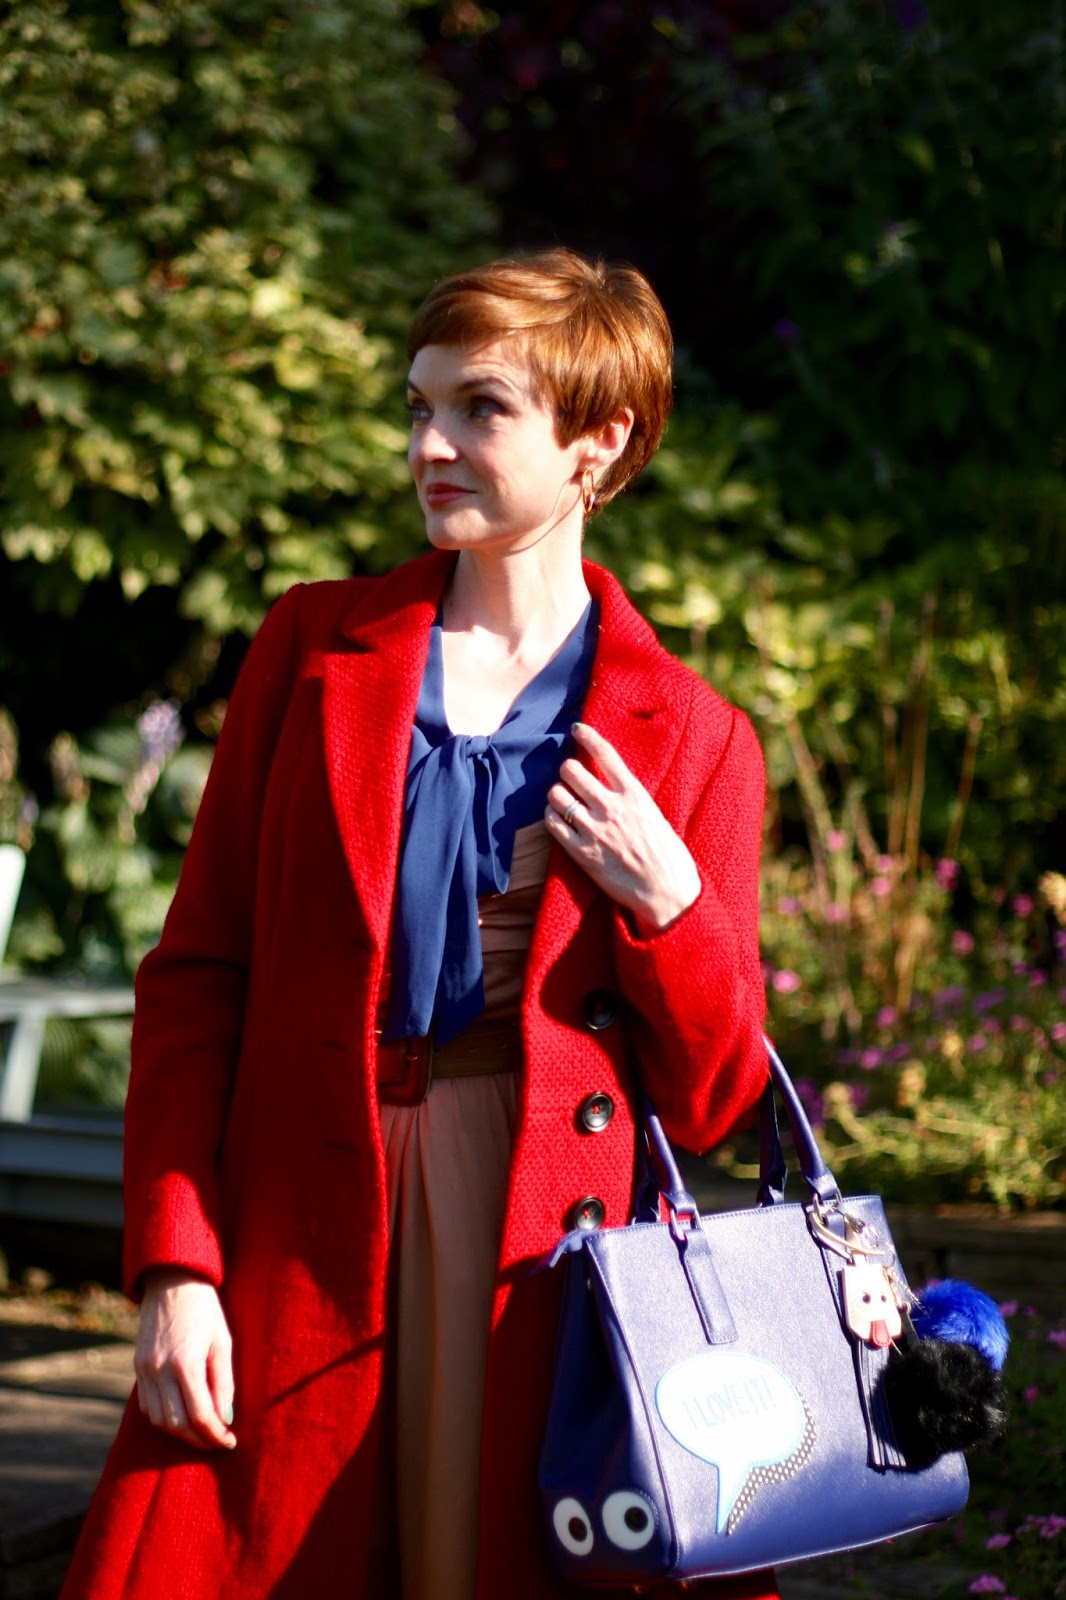 Wearing a red coat with blue.